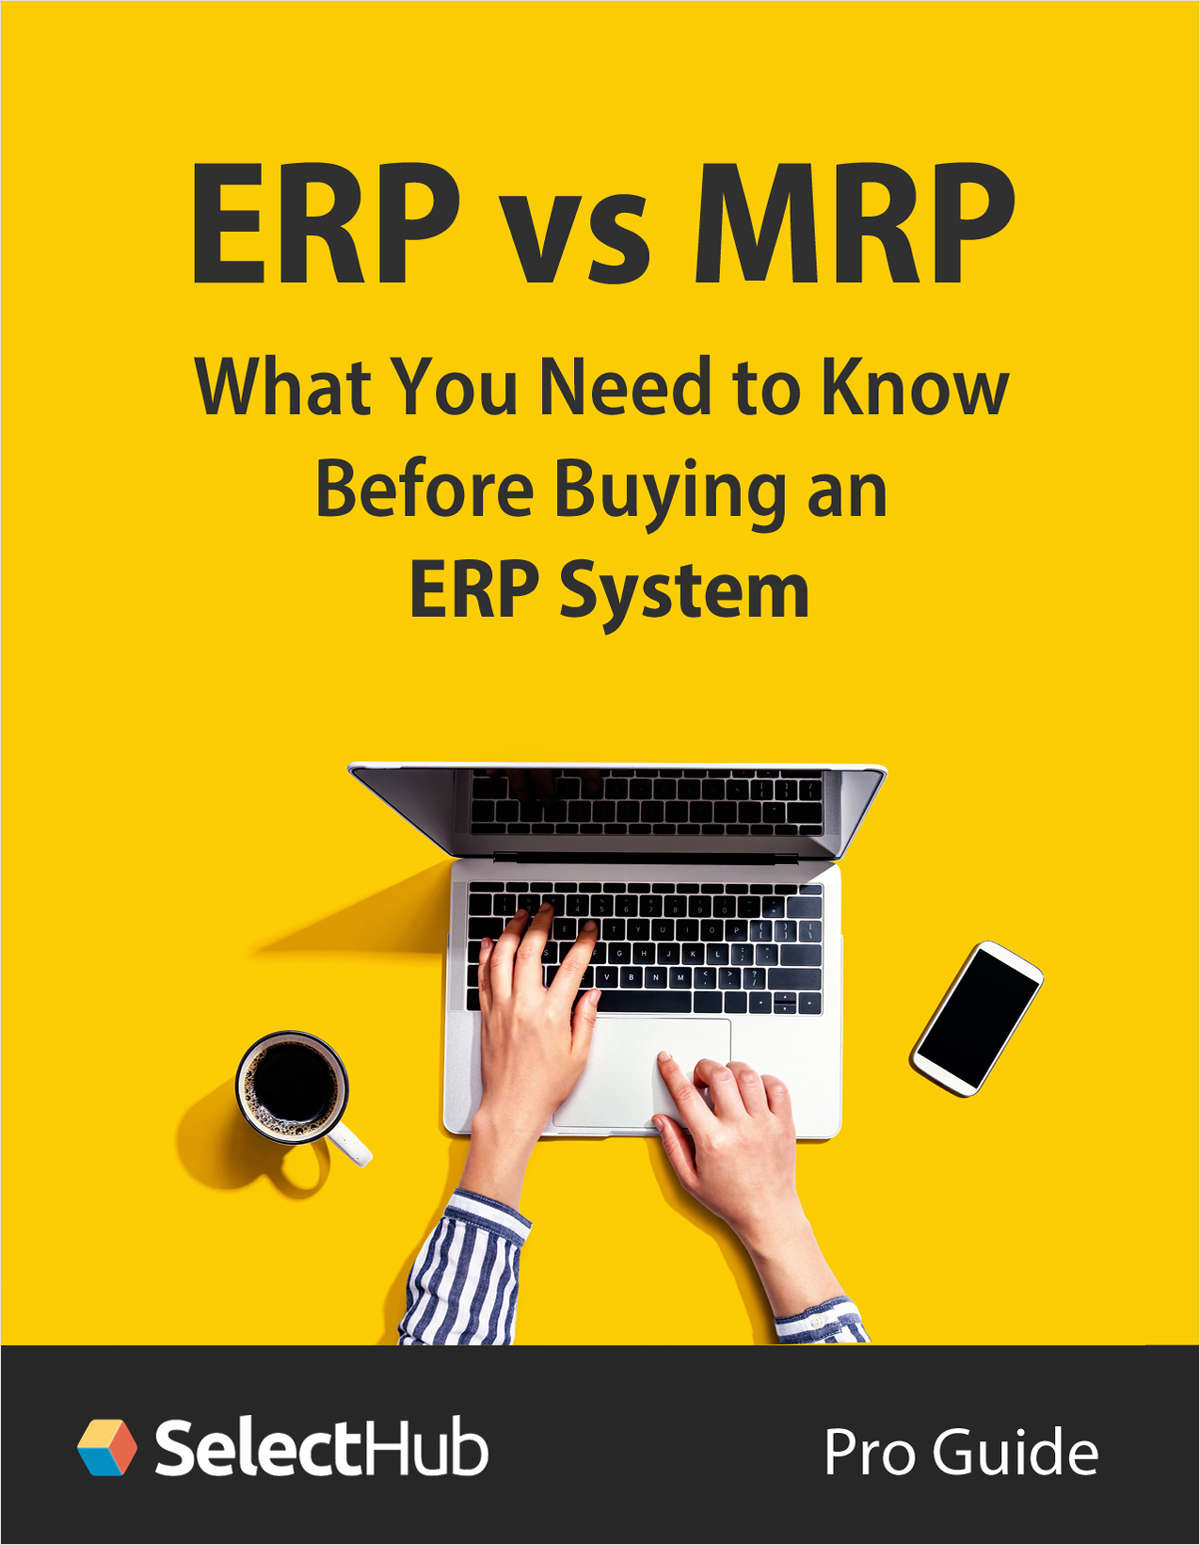 ERP vs MRP--What You Need to Know Before Buying a New ERP System in 2021